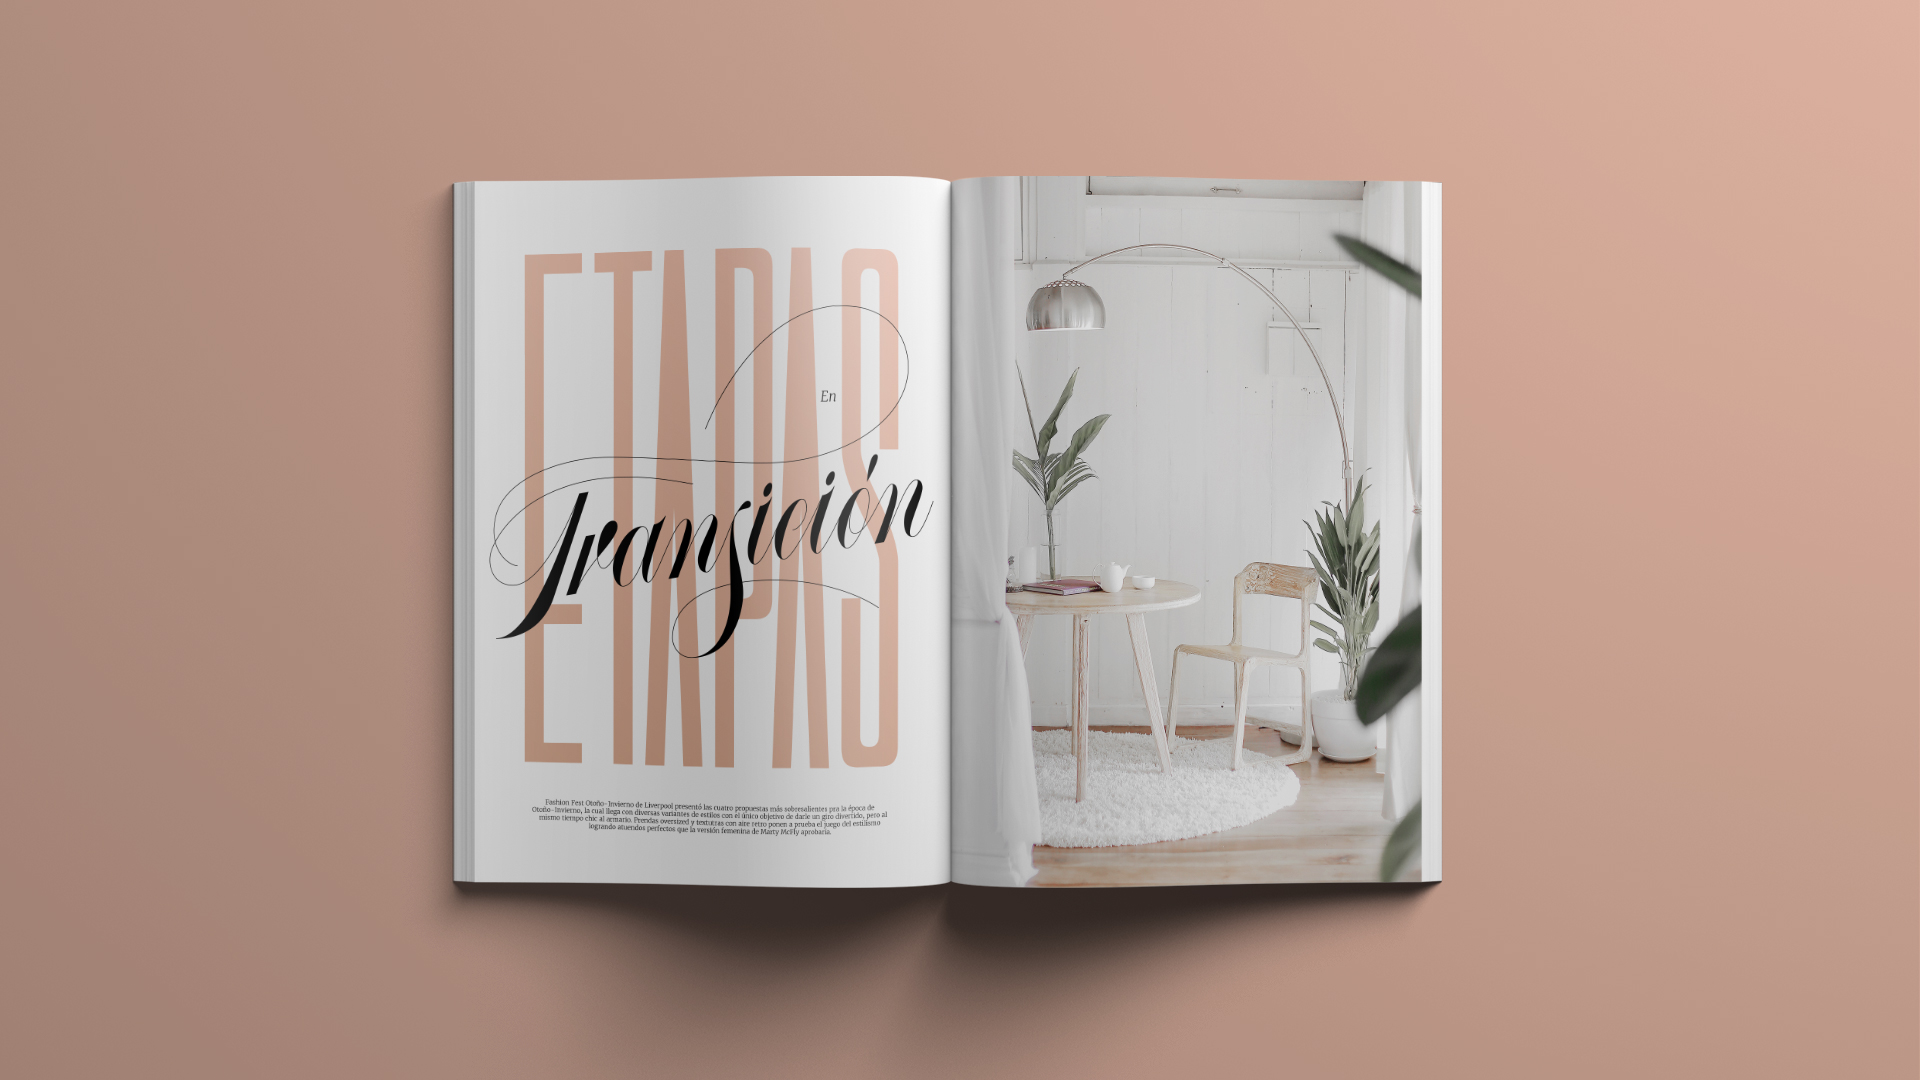 Editorial Lettering